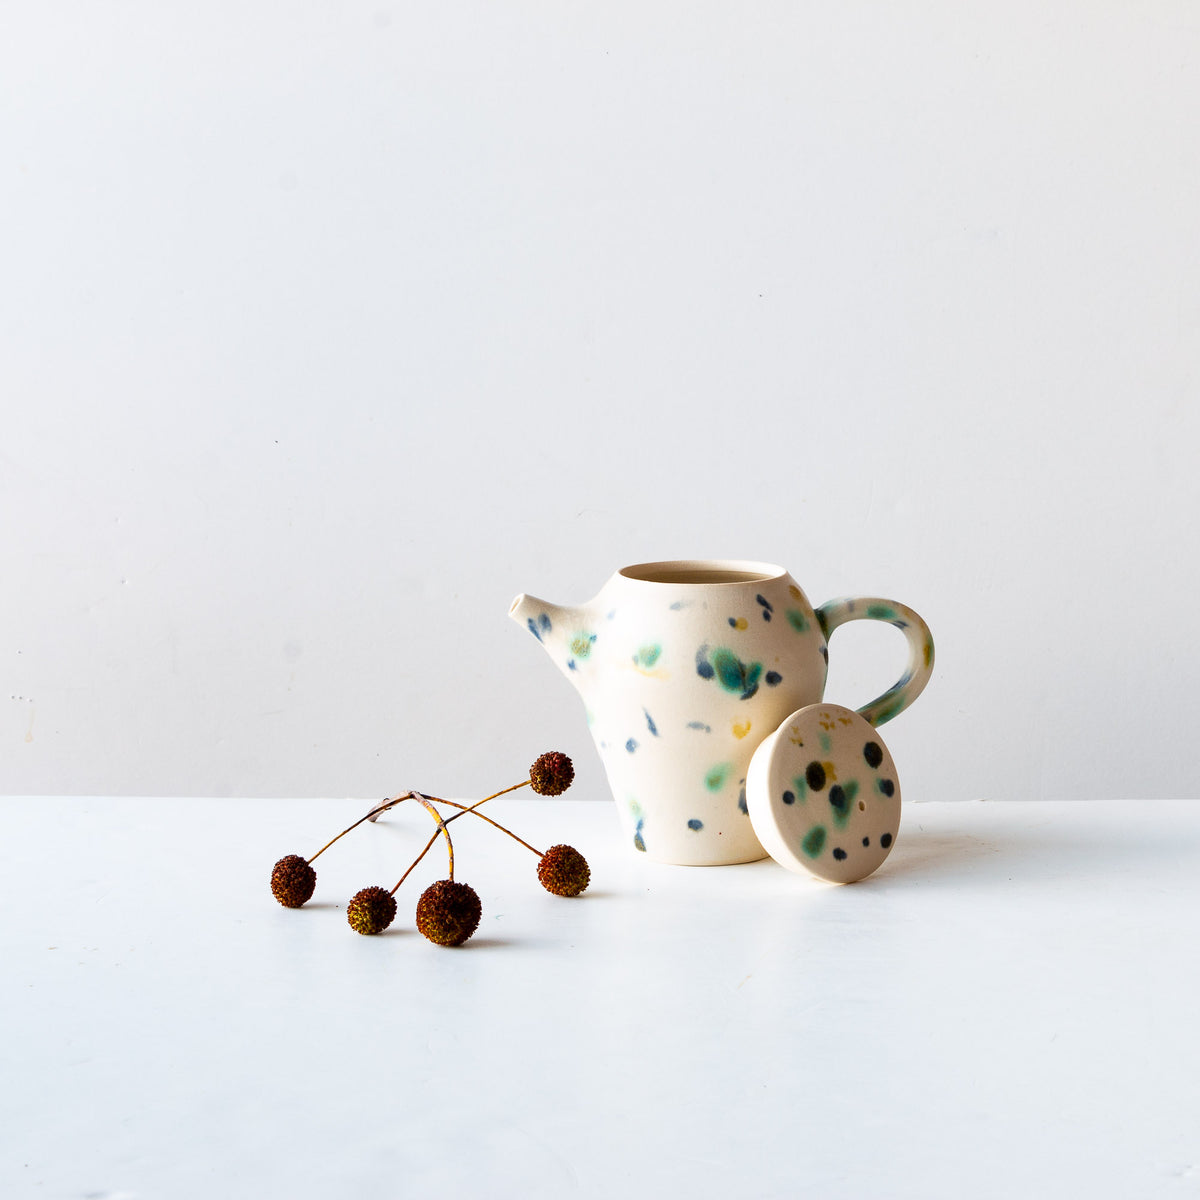 Photoshoot - Hanabira - Small Handmade Ceramic Teapot - Sold by Chic & Basta